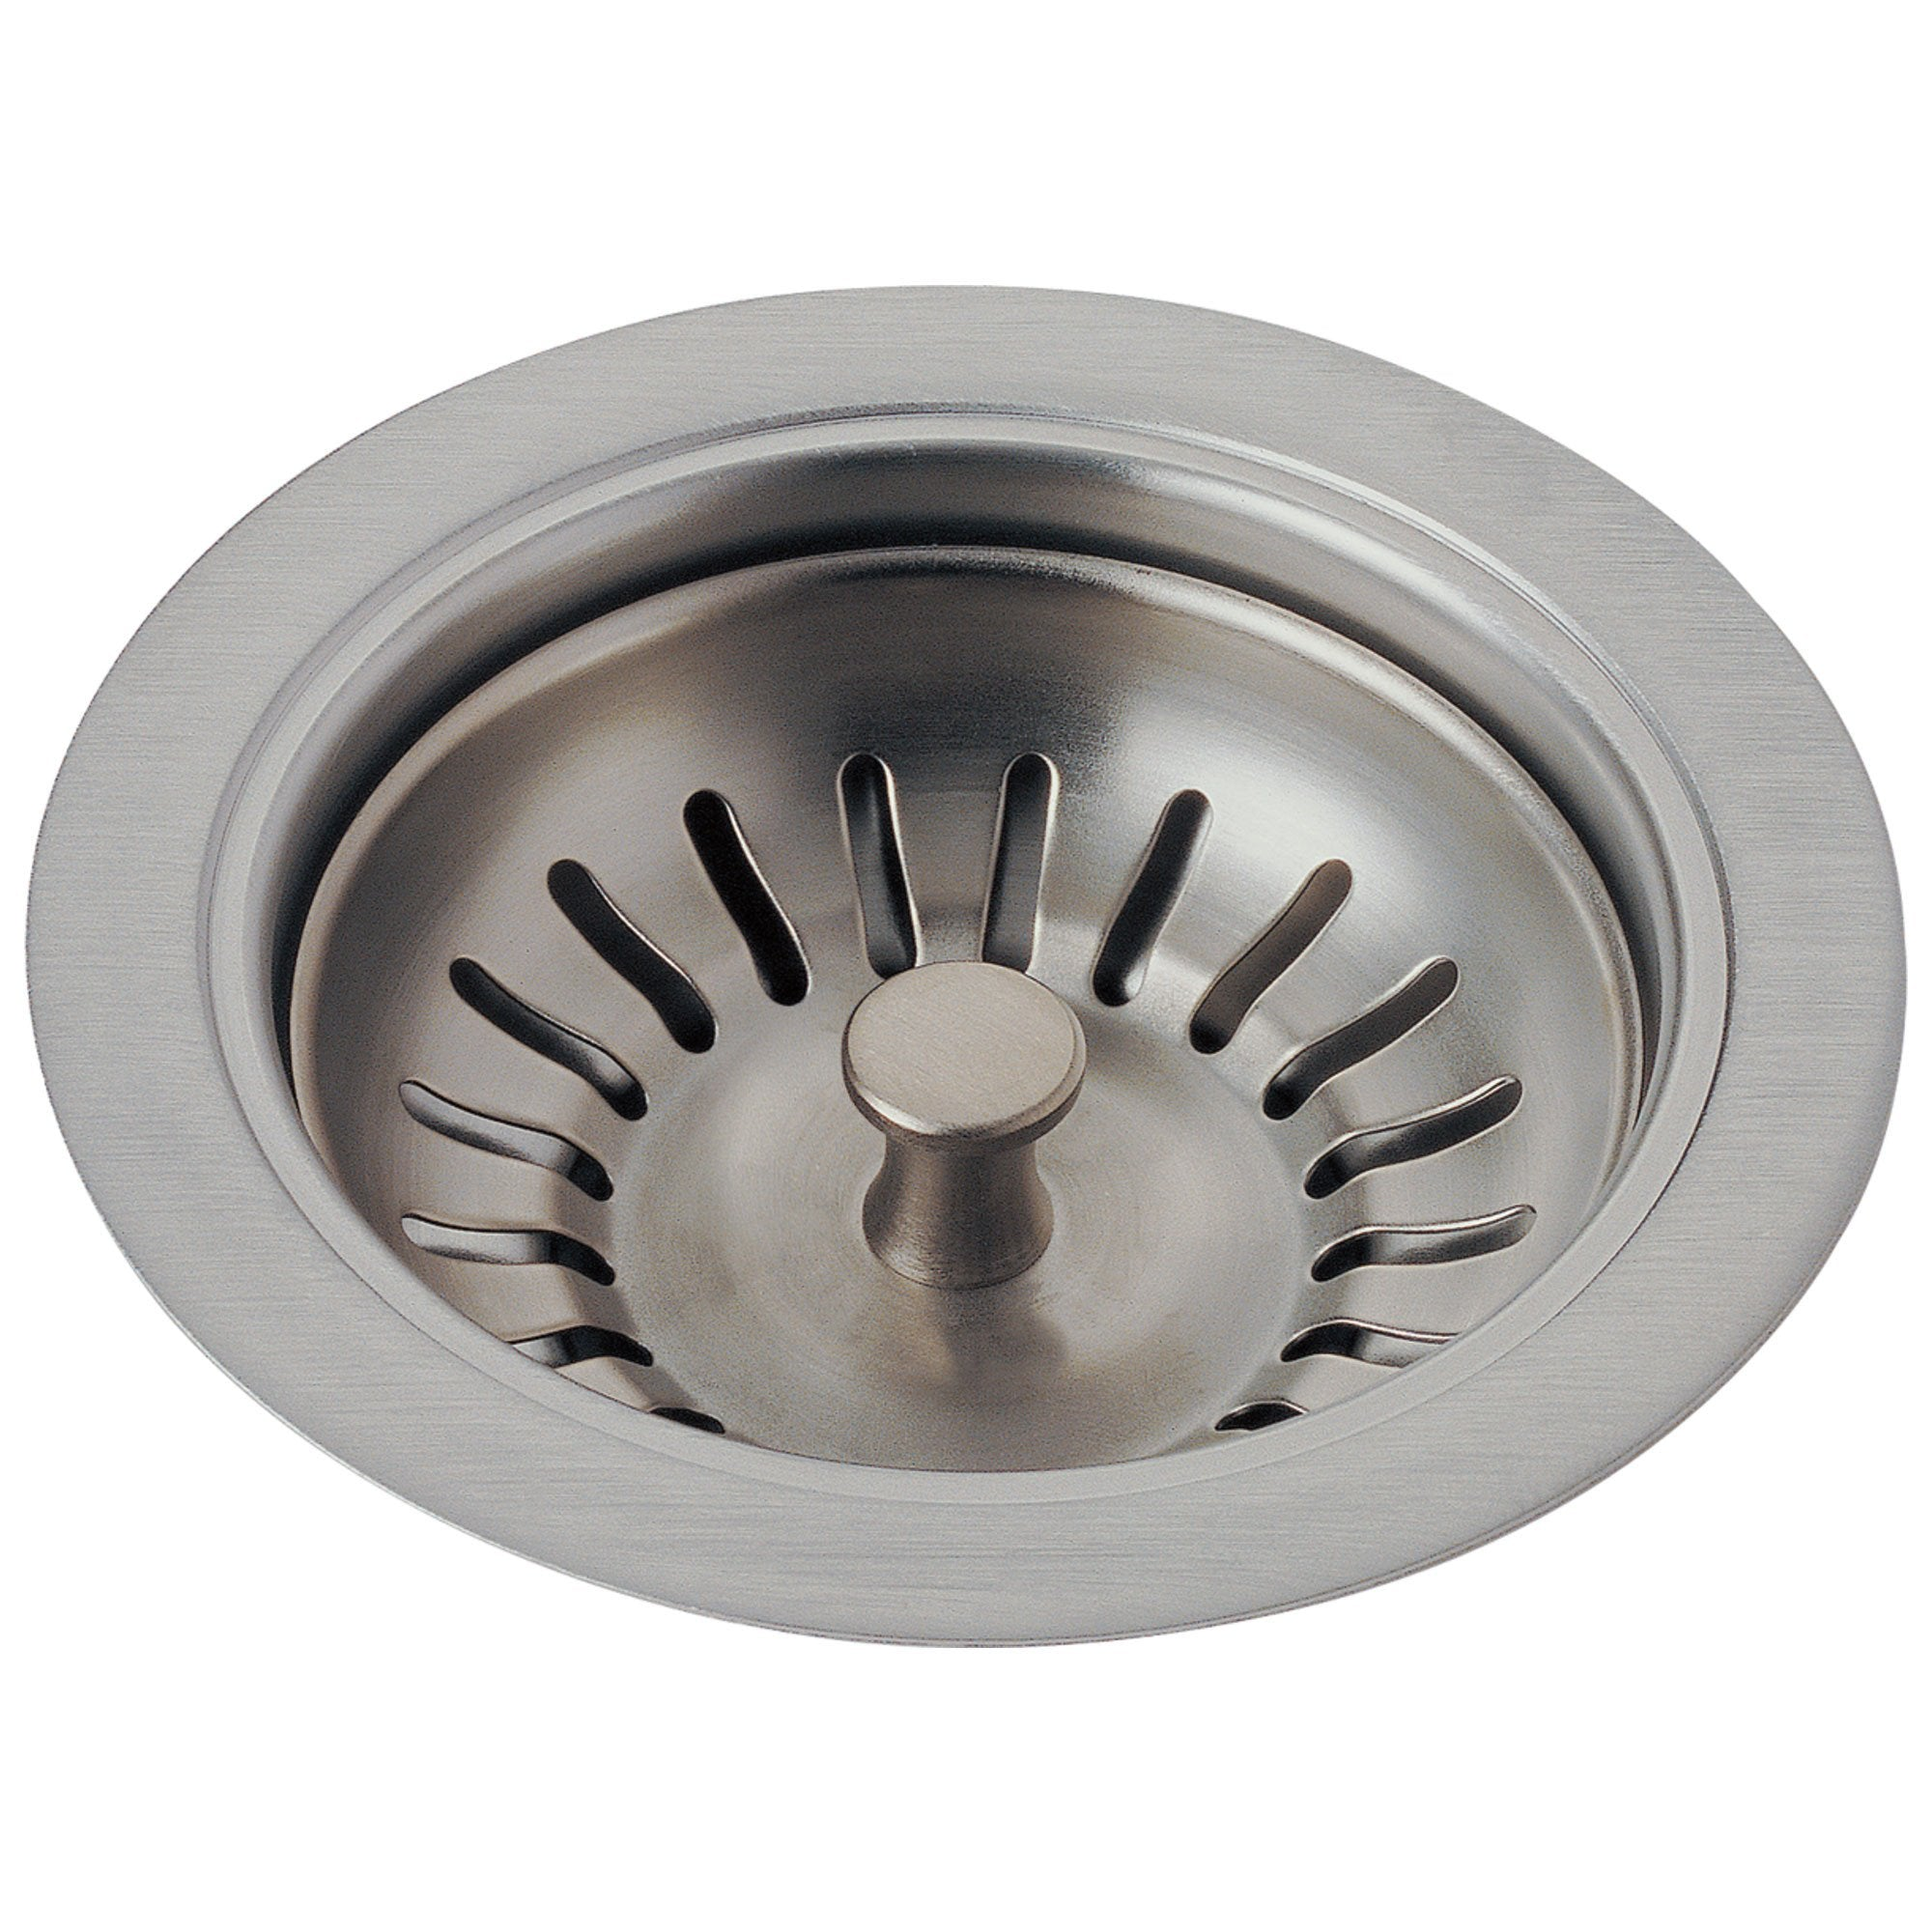 Delta Stainless Steel Finish Kitchen Sink Flange and Basket Strainer D72010SS